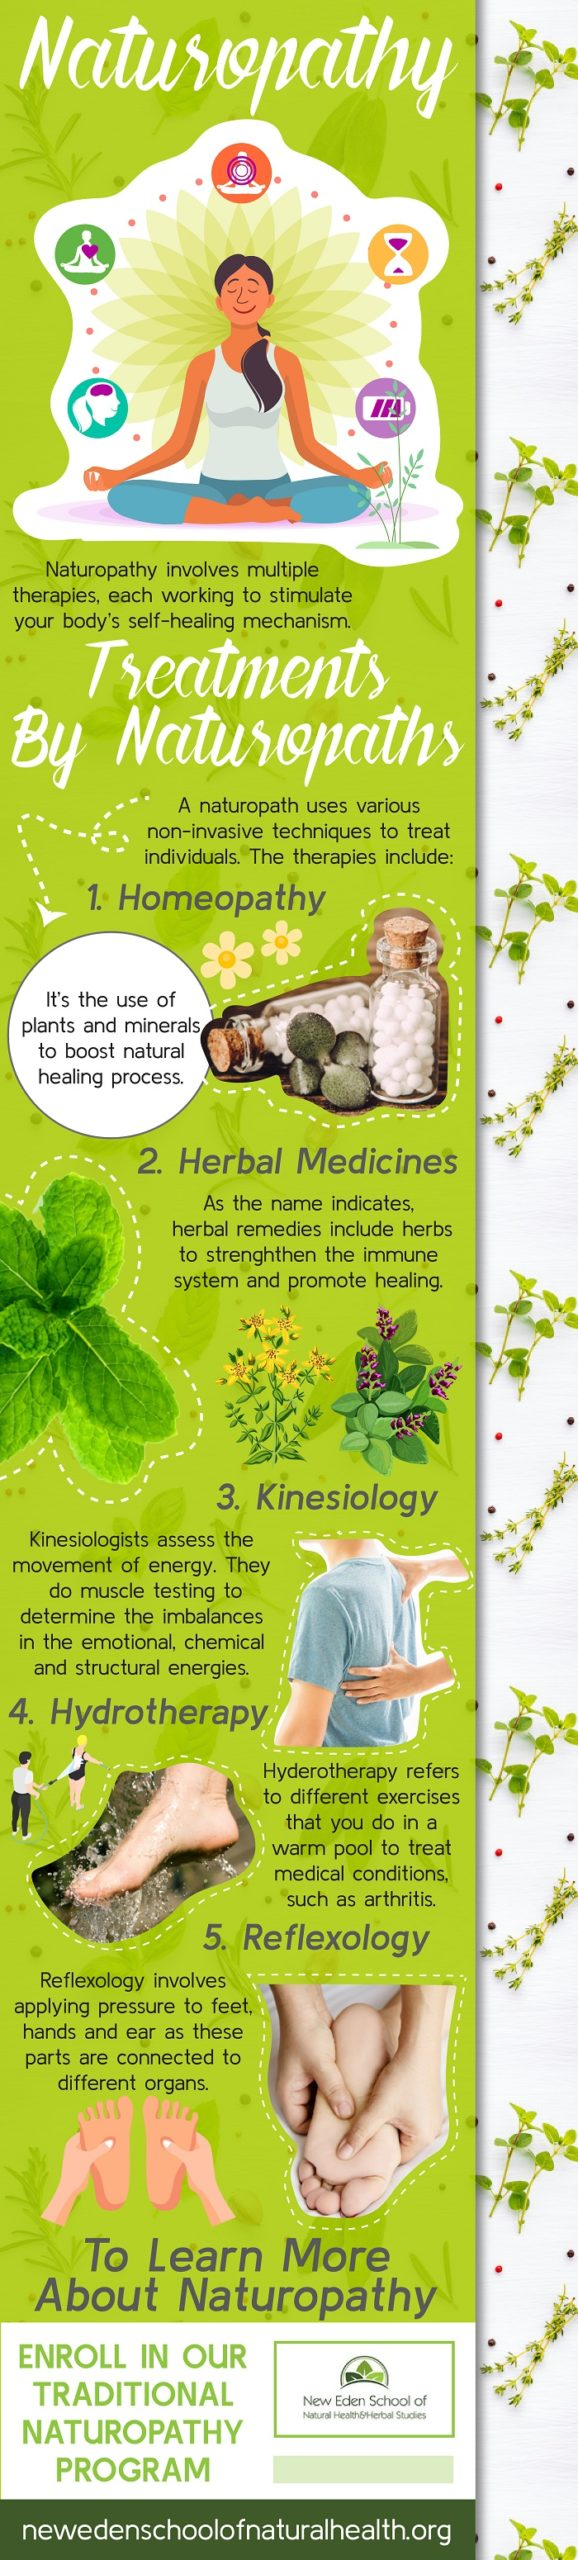 Naturopathy - An Infographic Complete